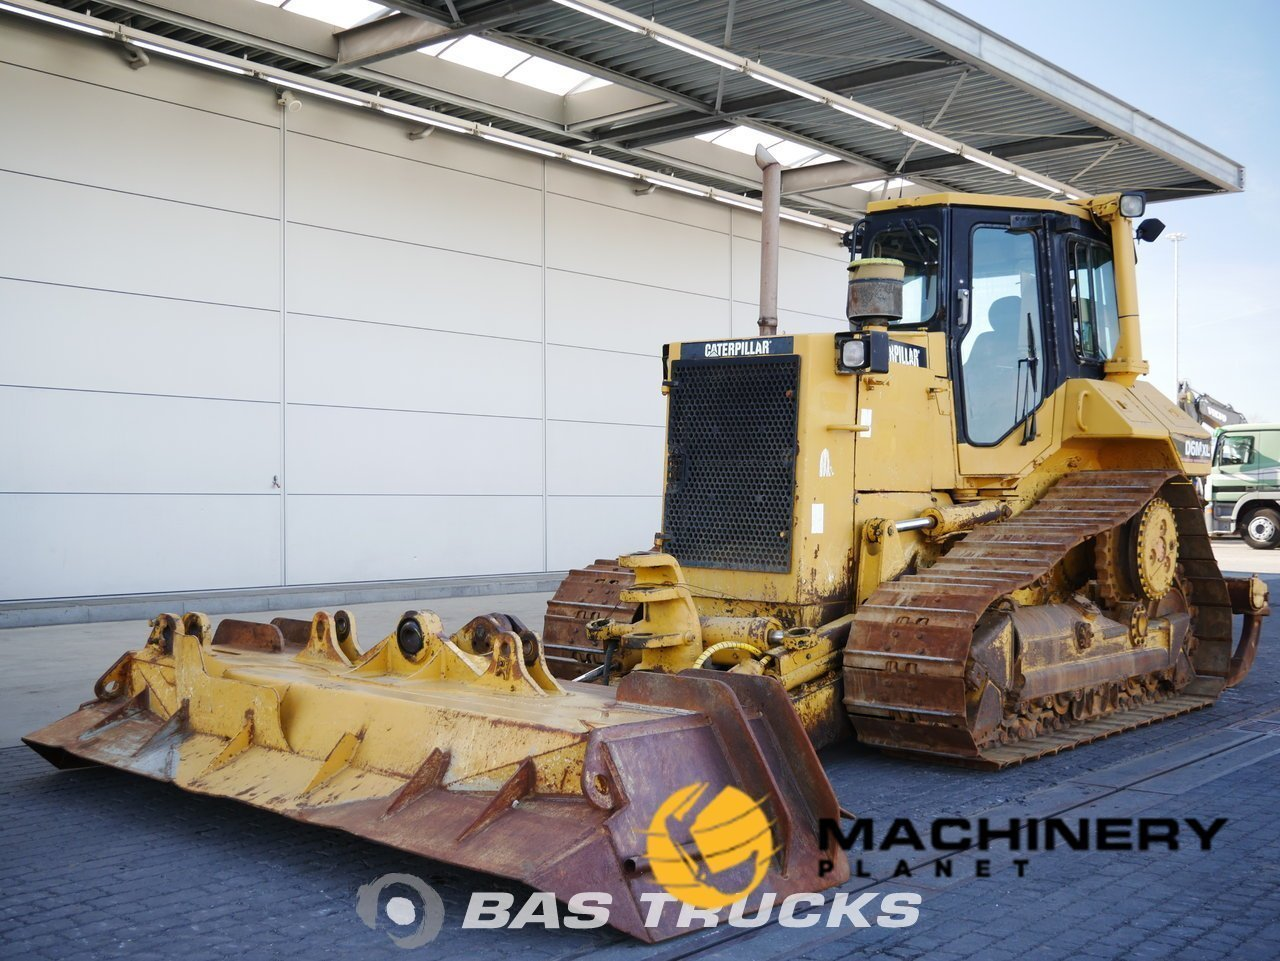 Used-Construction-equipment-Caterpillar-D6M-XL-Pat-blade-Track-1996_146231_1-1554097630969_5ca1a5deec745-1.jpg